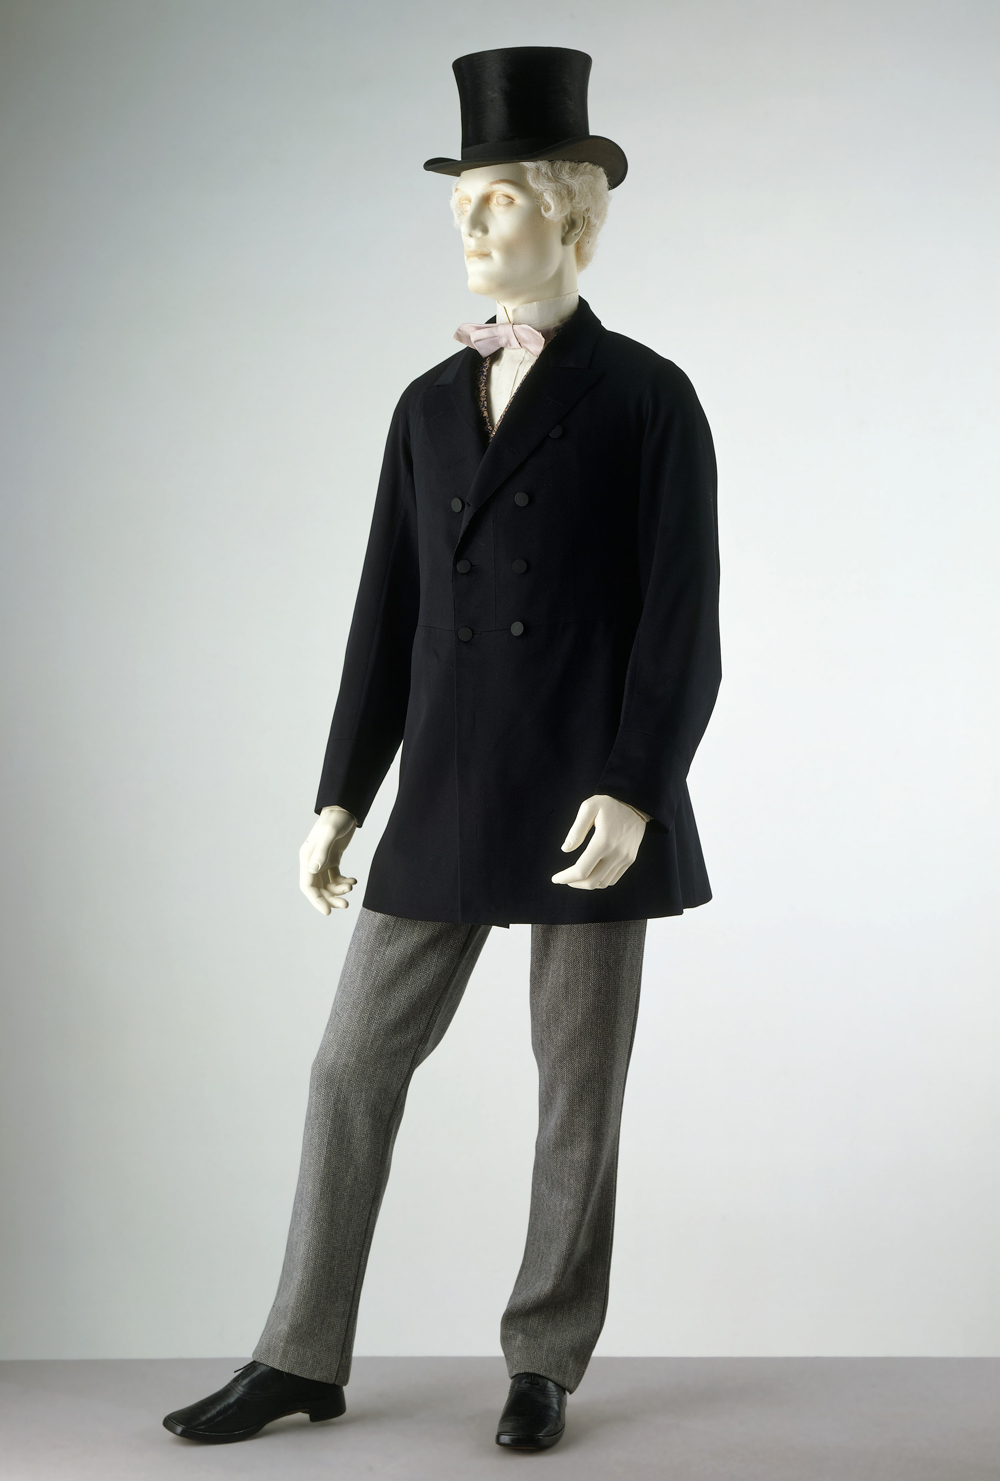 Gallery For gt Early 19th Century Mens Fashion